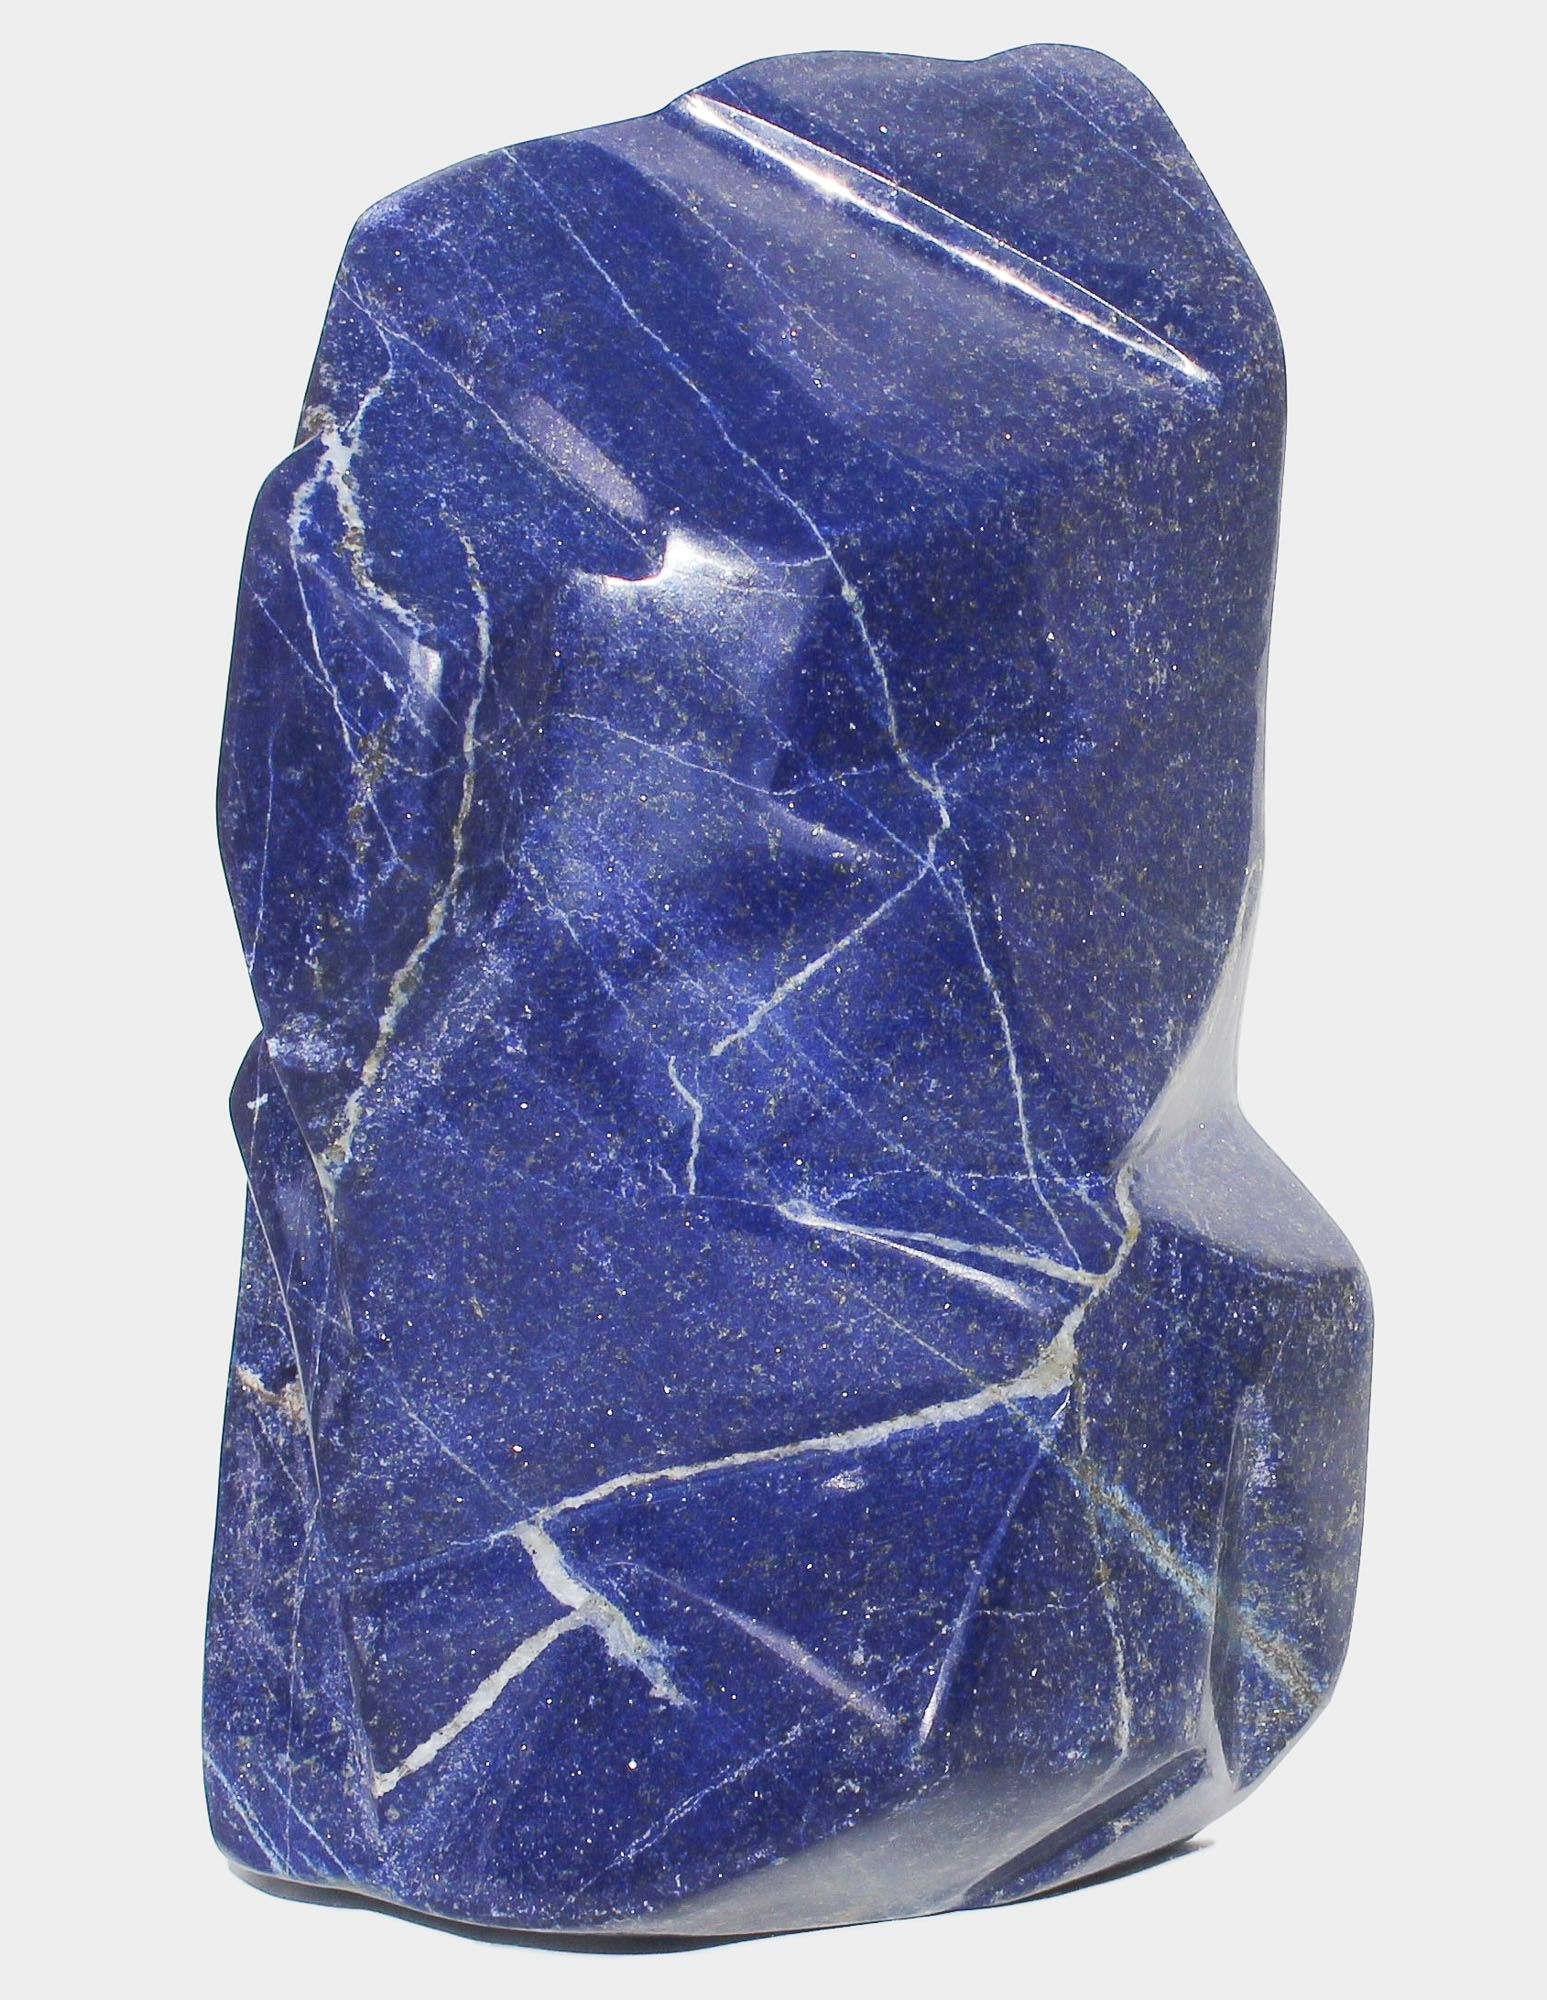 Science and Natural History | Lapis Lazuli - The Curator's Eye